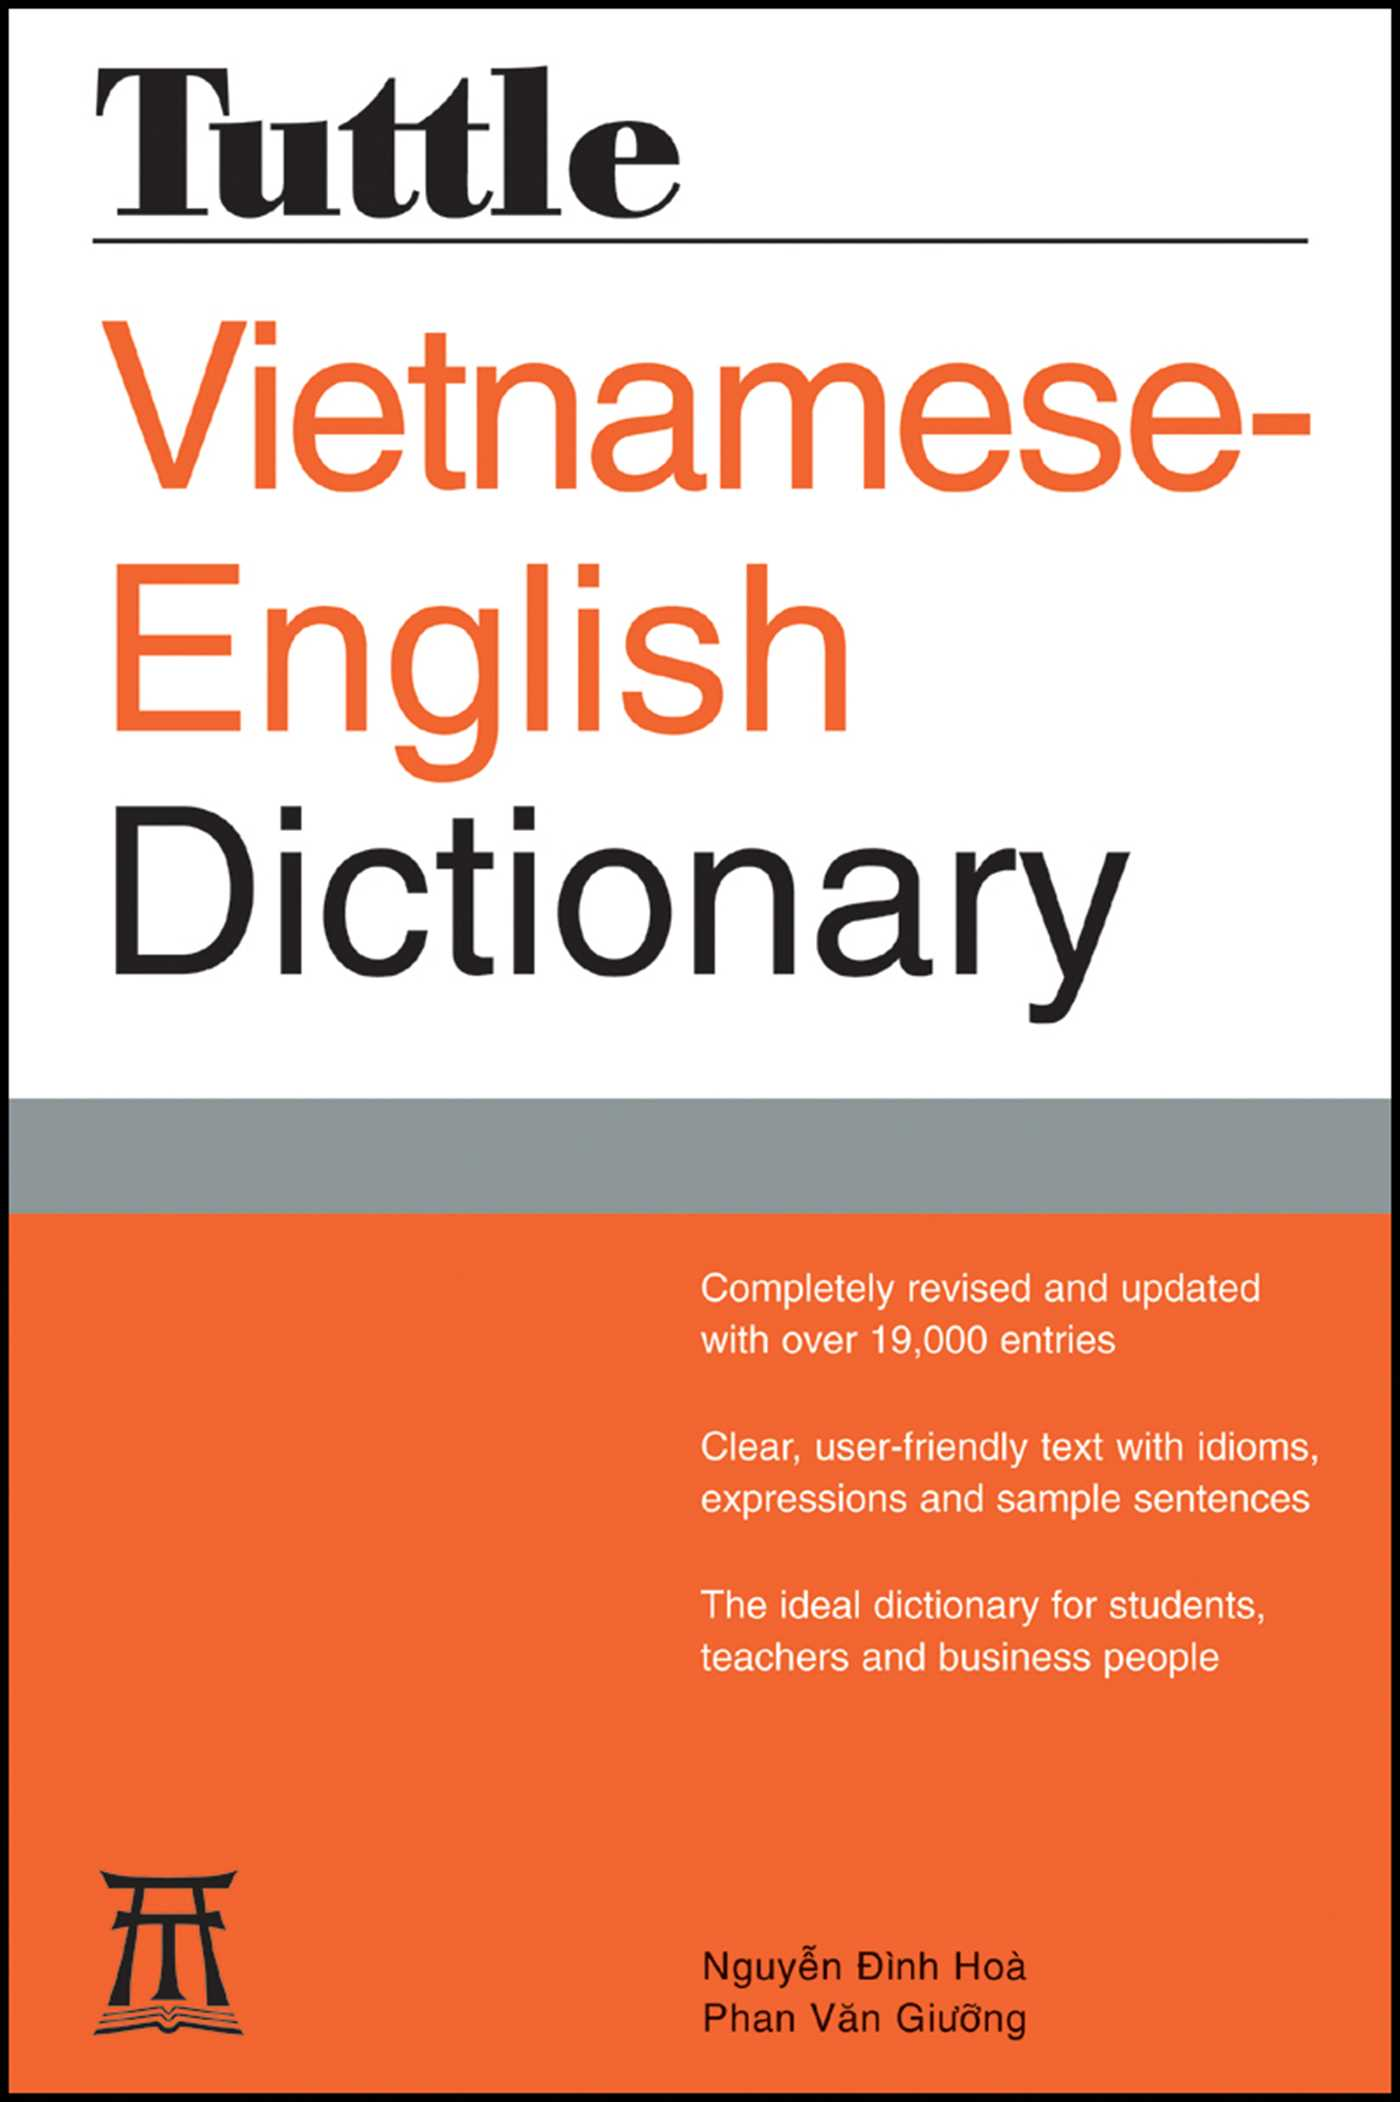 Tuttle-vietnamese-english-dictionary-9780804846738_hr